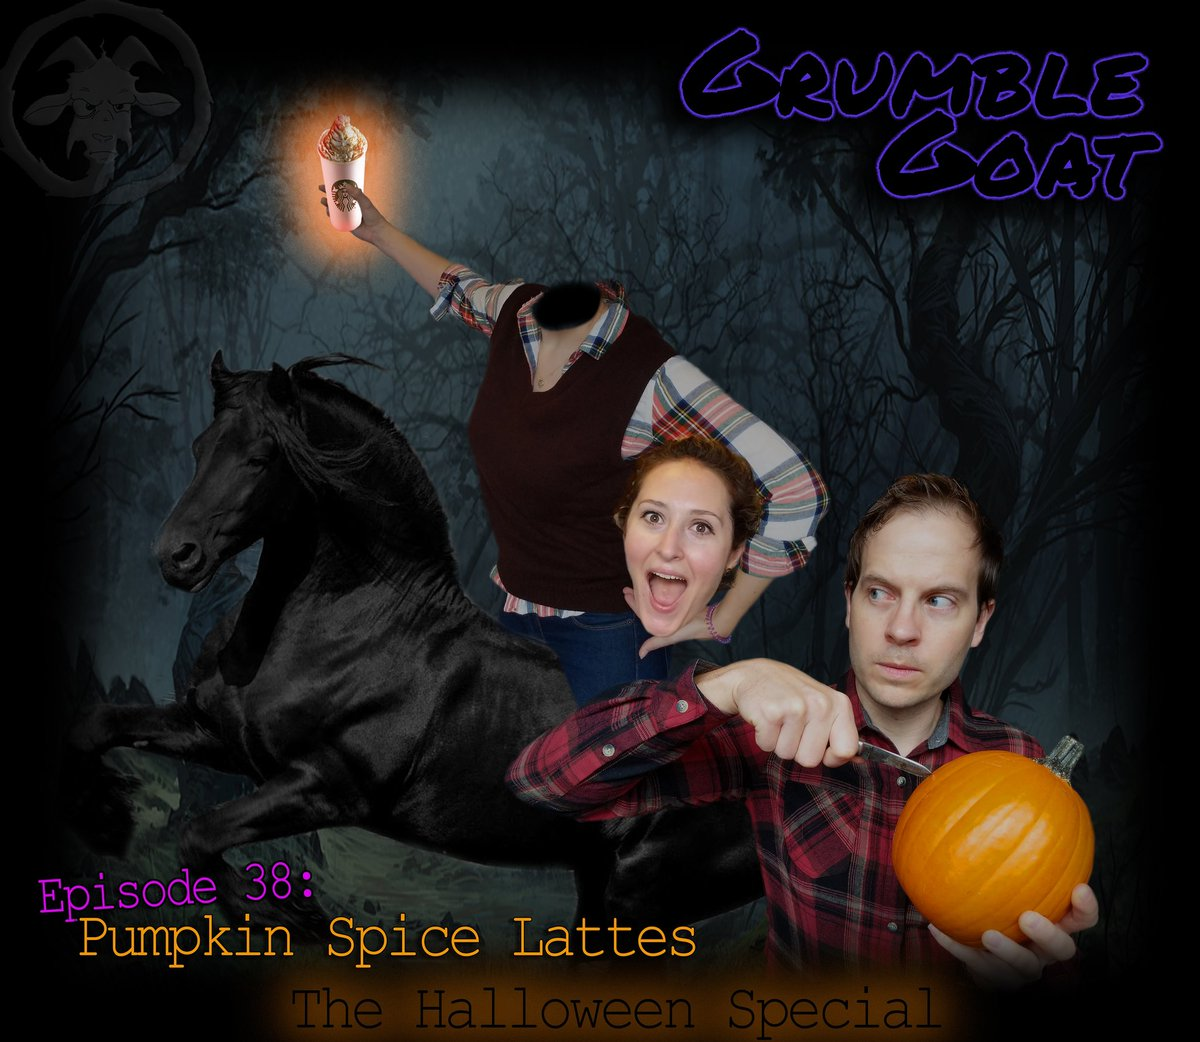 Don't miss the Grumble Goat Halloween Special! What's scarier than Pumpkin Spice Lattes!?! #grumblegoat #podcast #comedy #Halloween https://t.co/SwzK03PQlZ